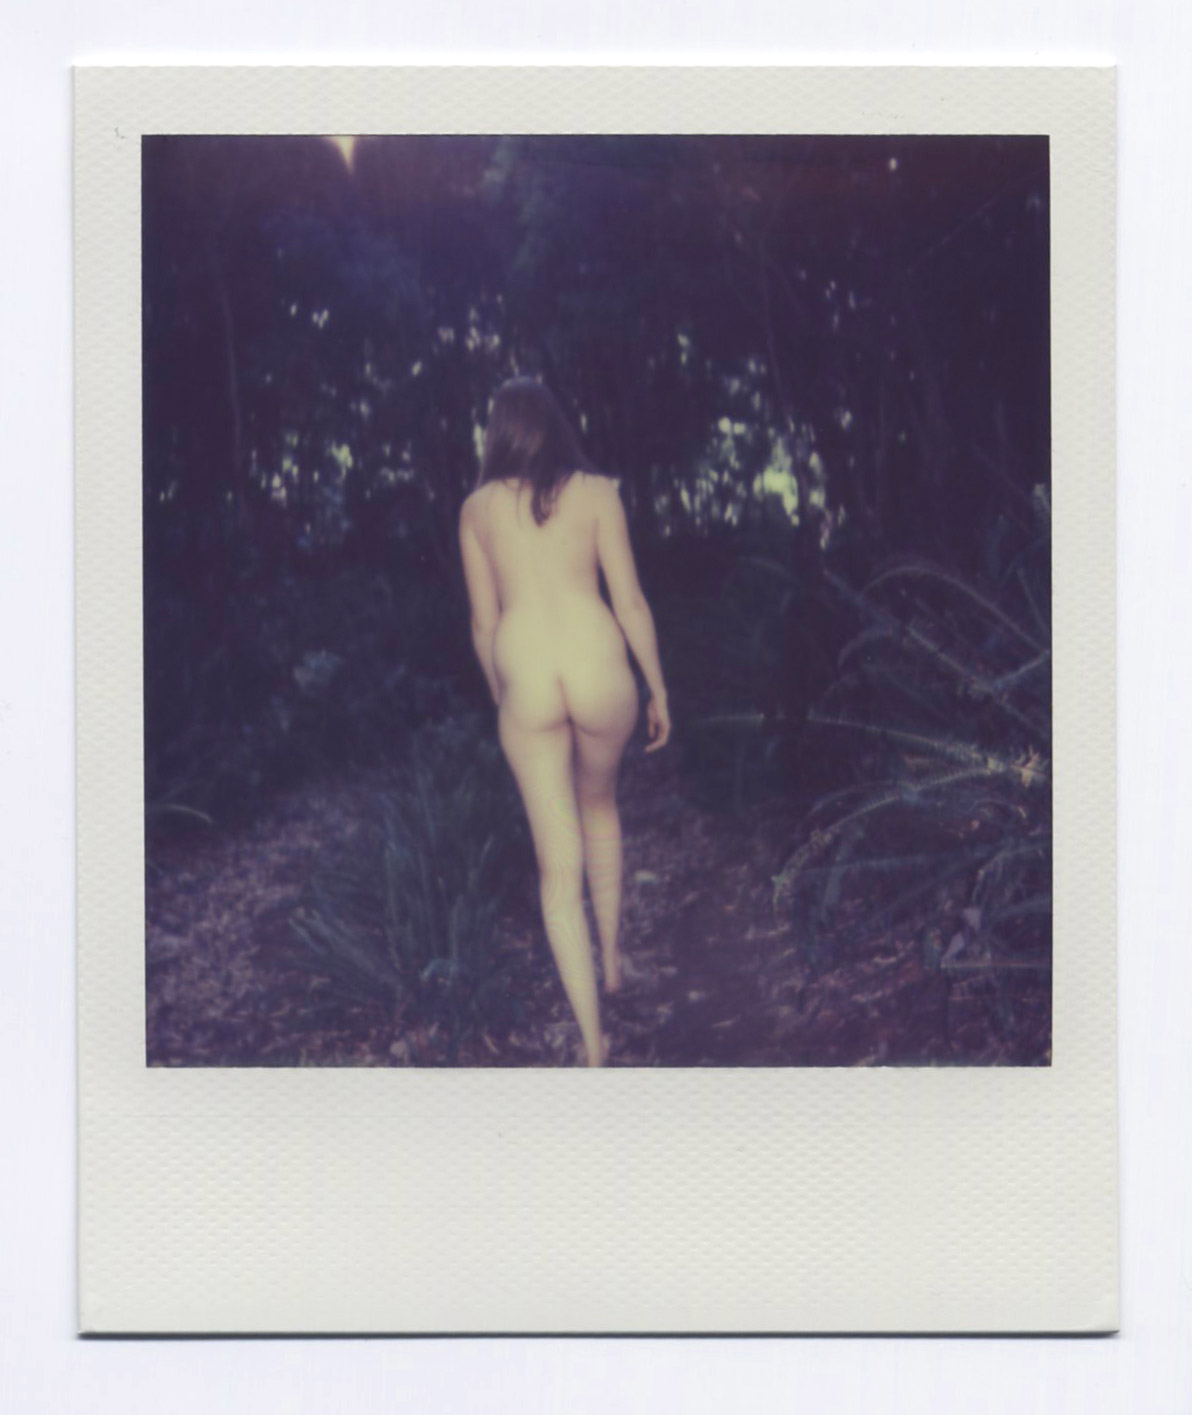 PolaroidWomen-7 Instant Images of Nudes by Leah Hawker Cape Town Photographer